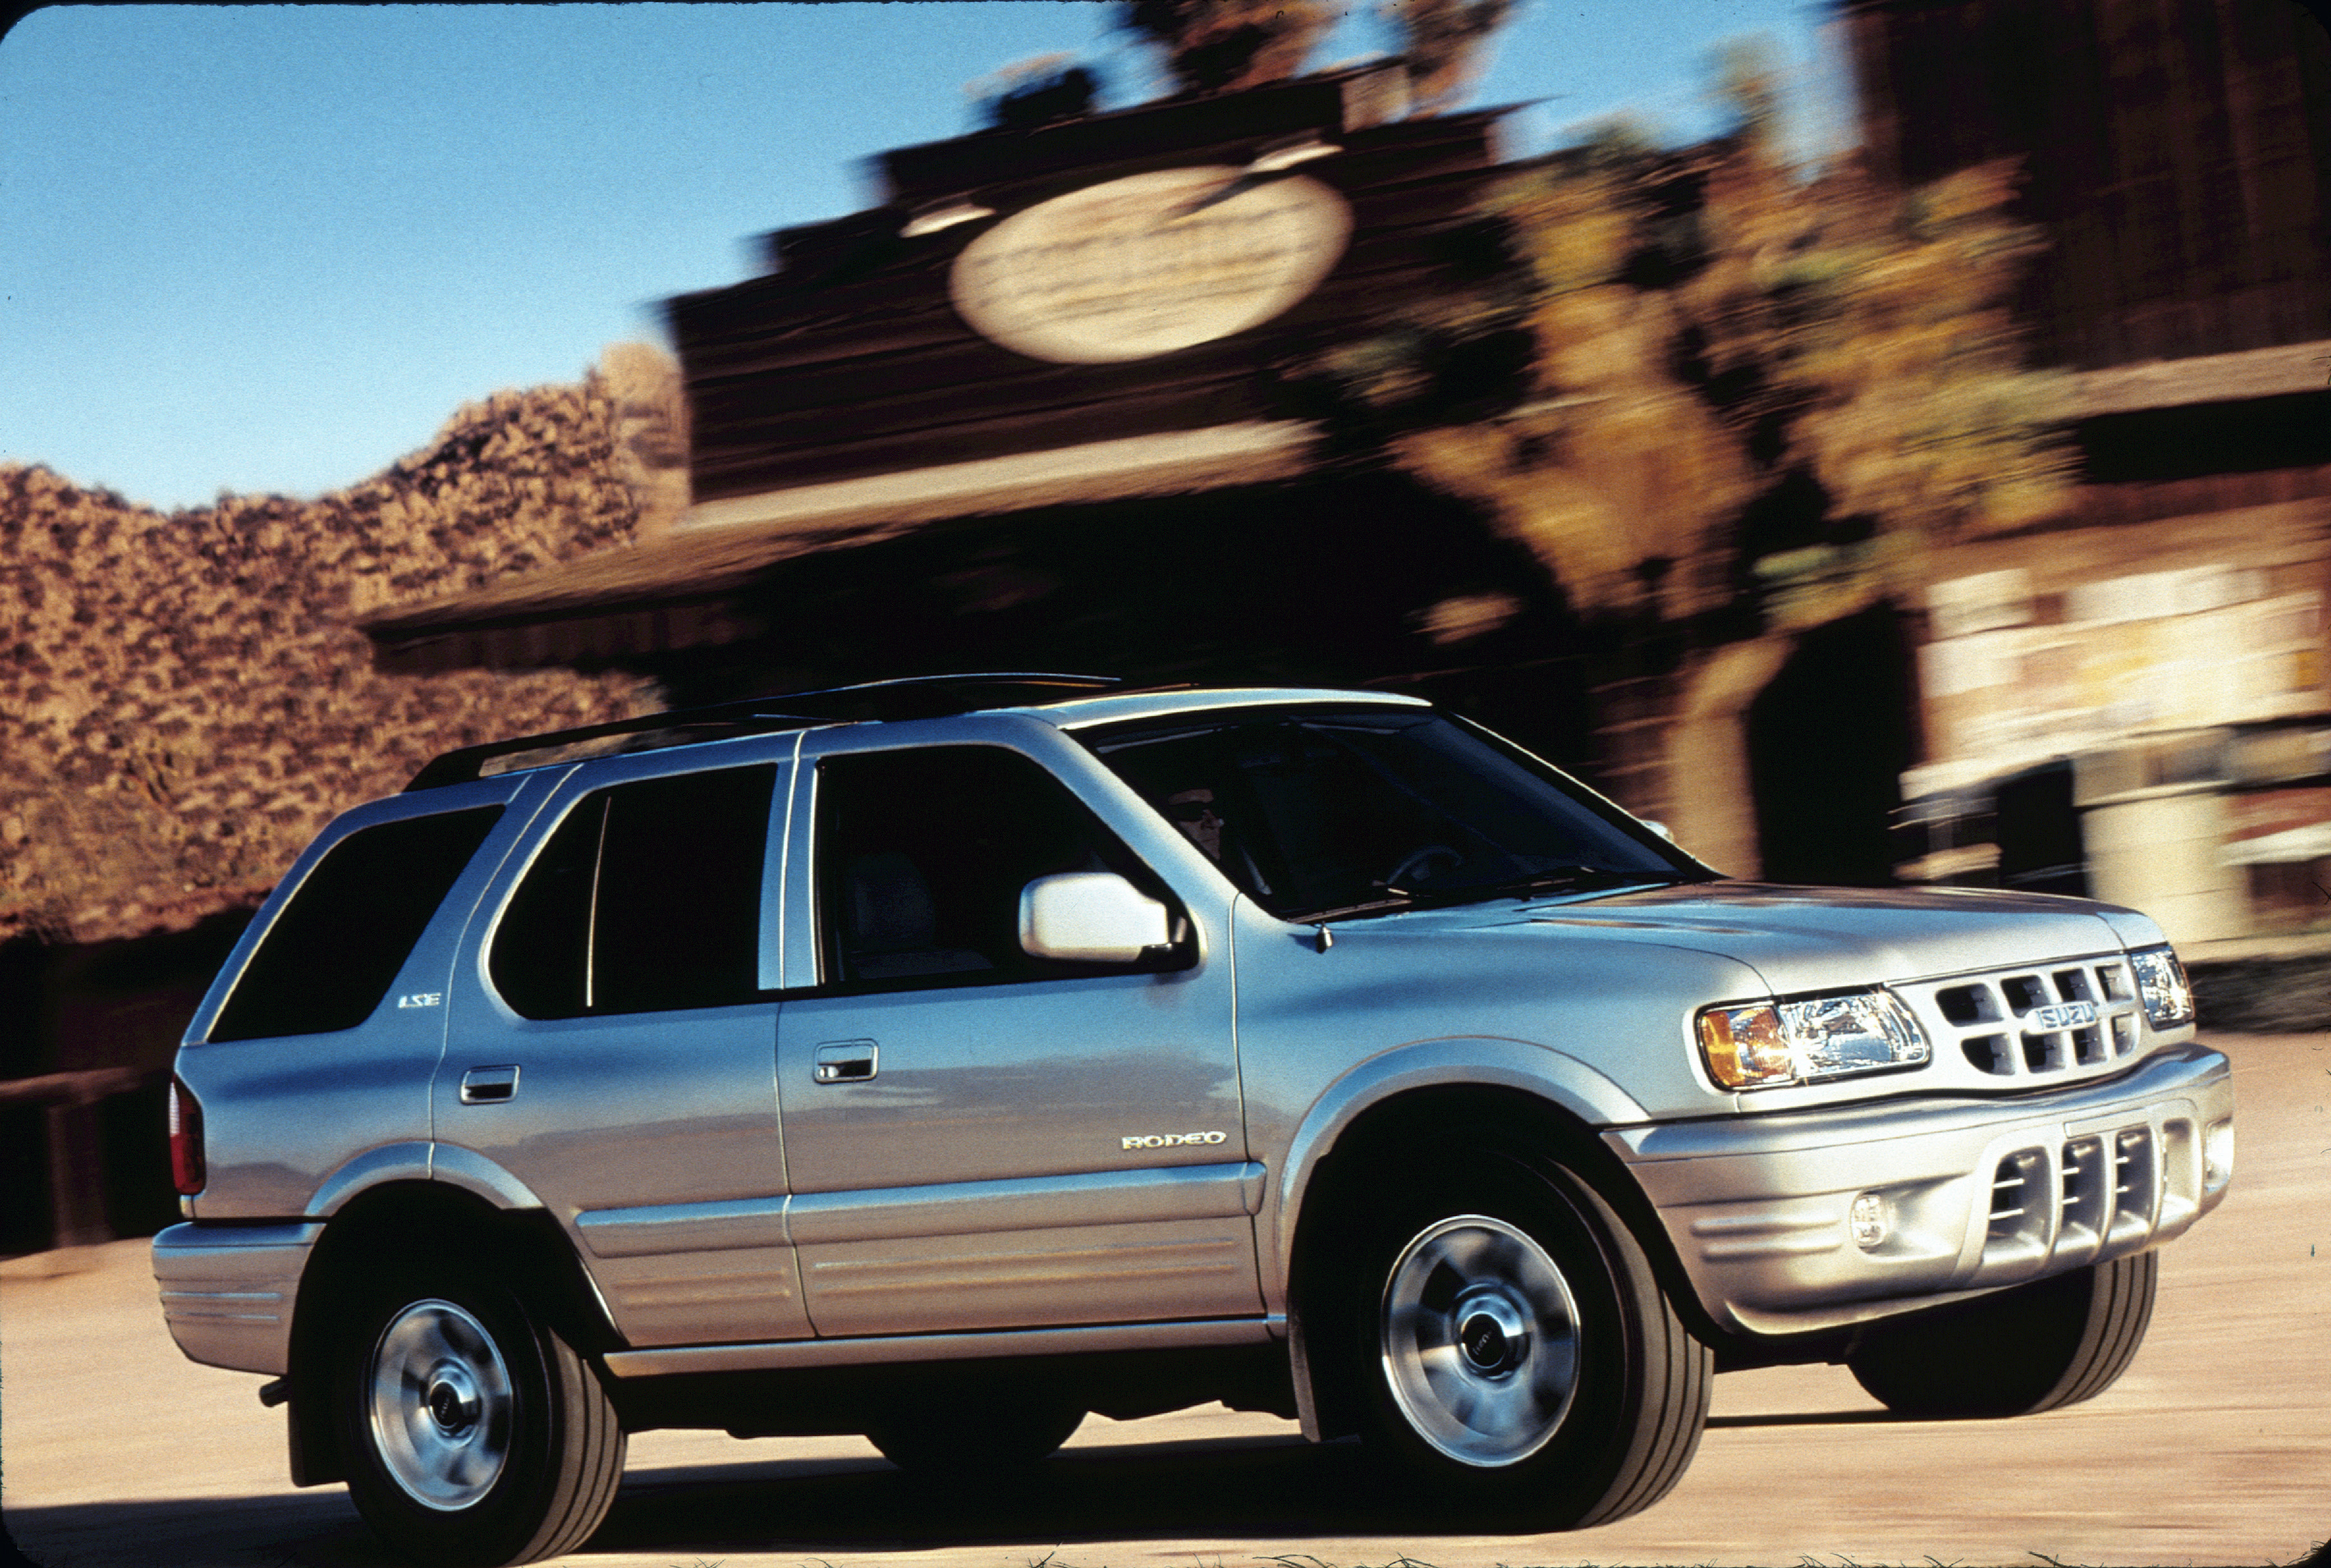 2002 isuzu rodeo information and photos zombiedrive